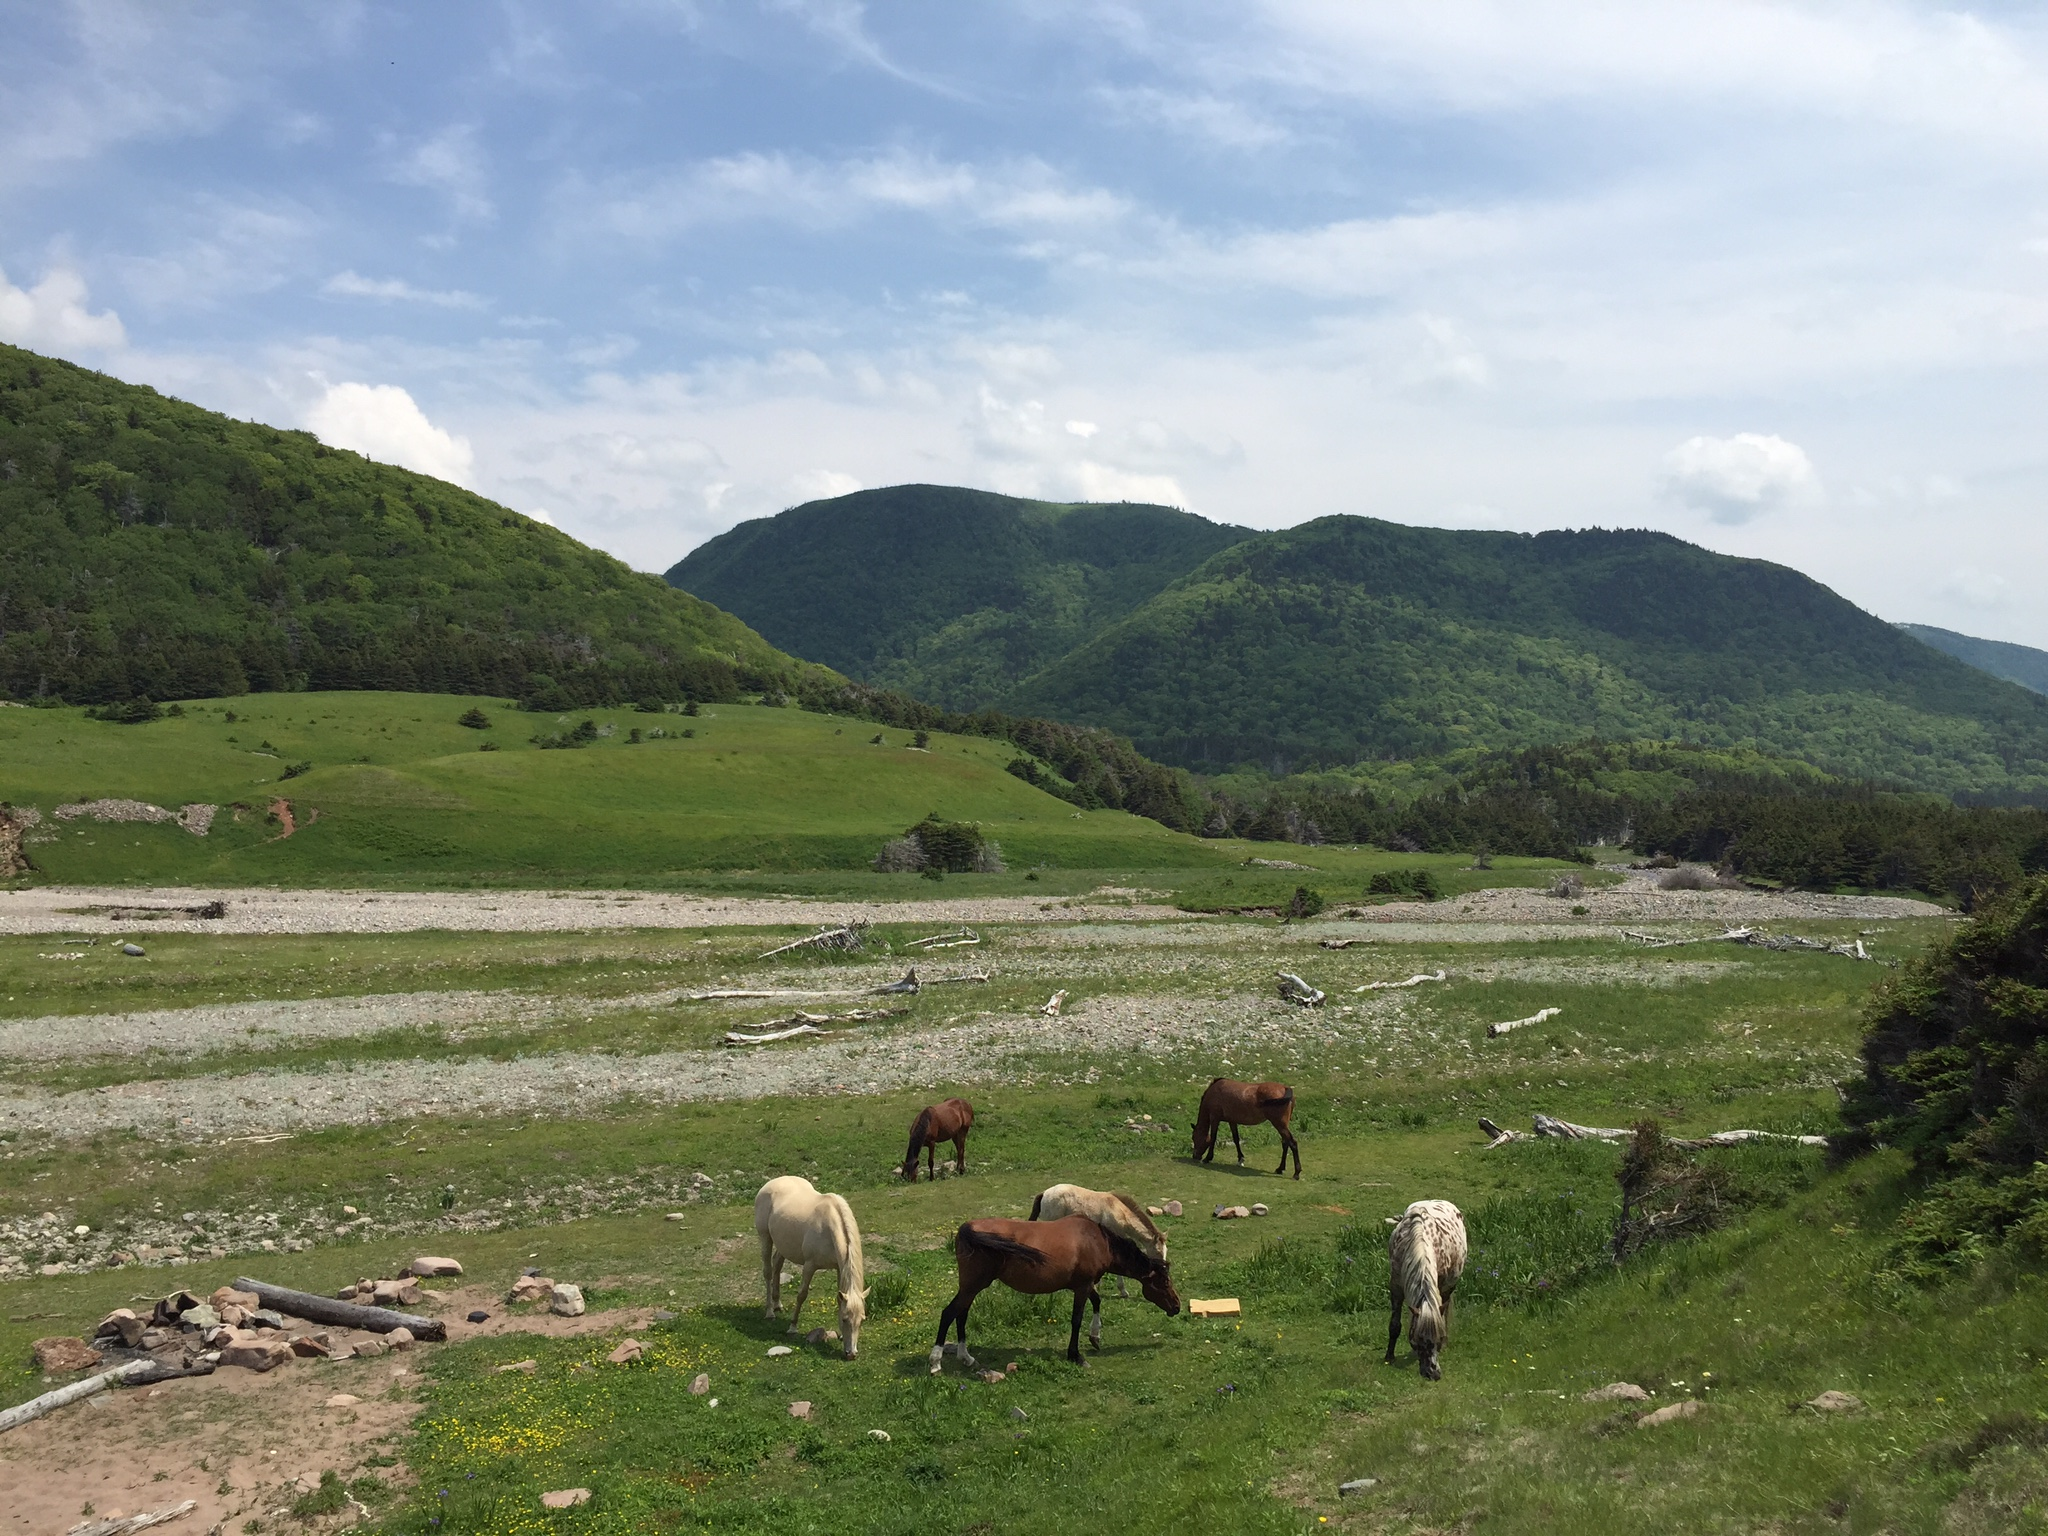 wild horses in Pollett's Cove